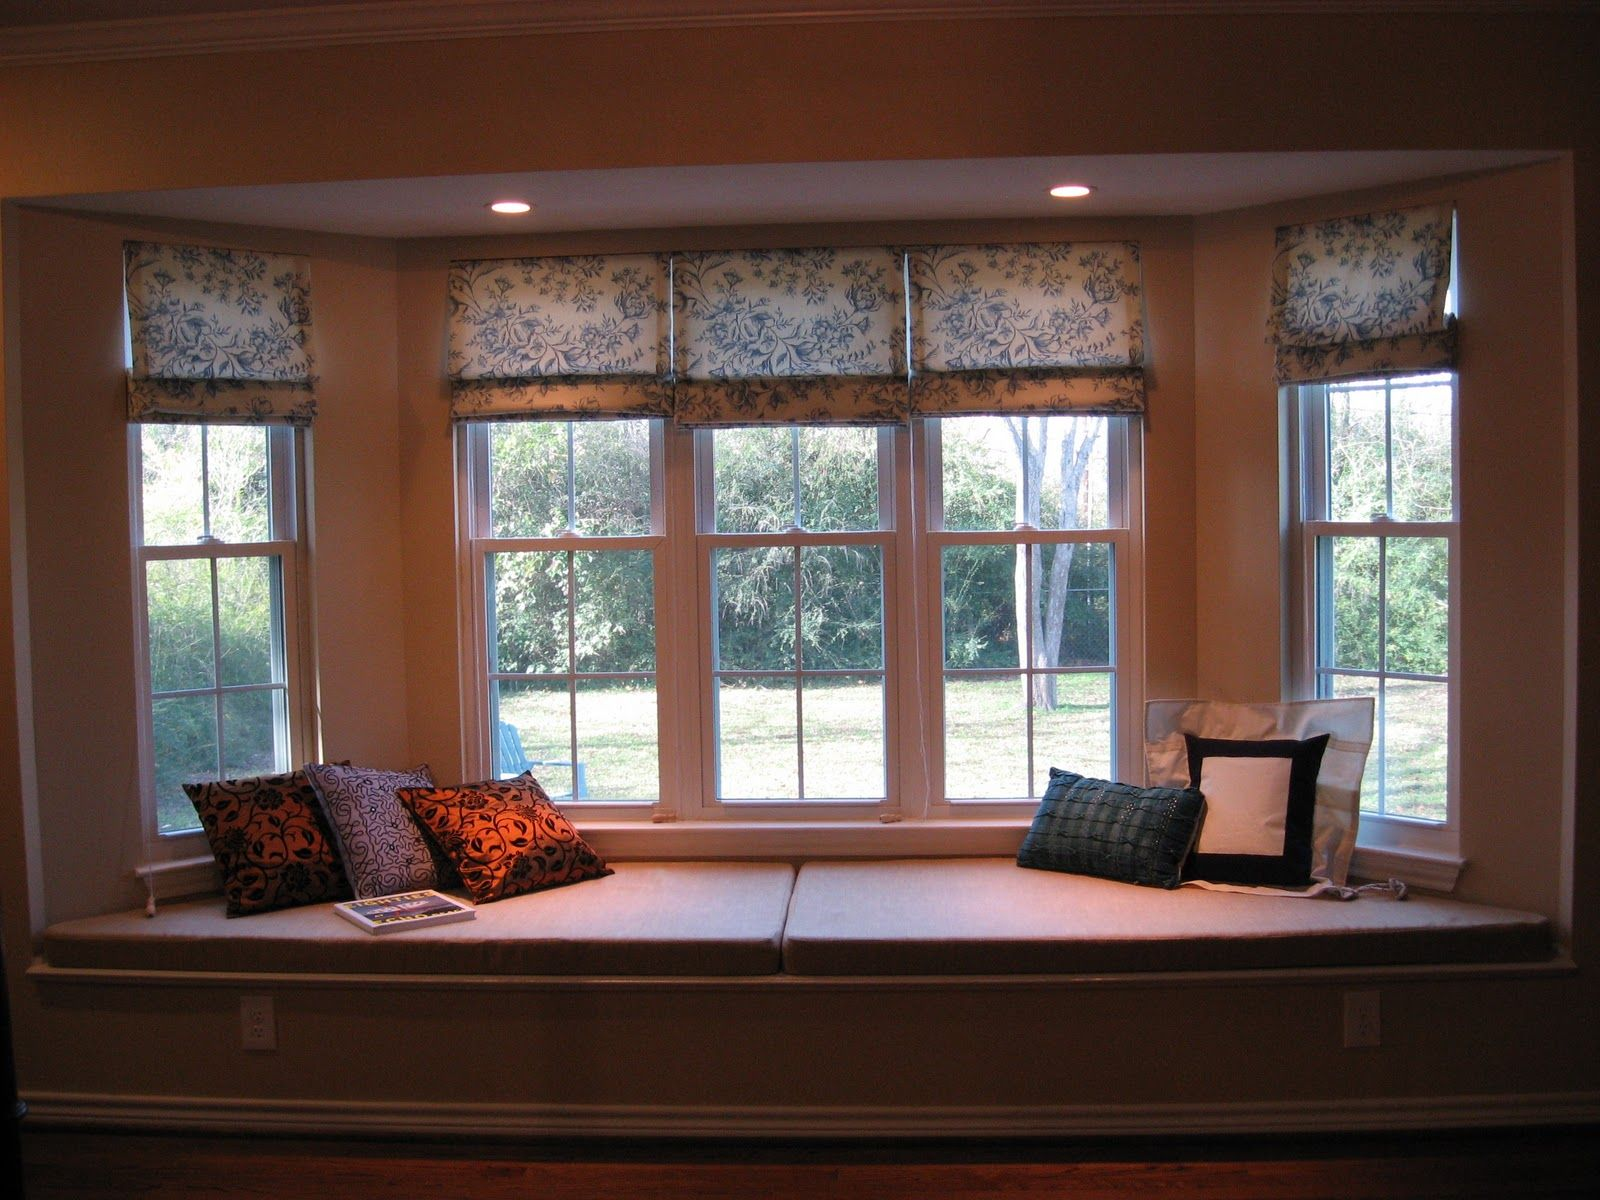 Bay Window Decorations With Conservative White Wooden Frames Folding Floral Curtain Design For